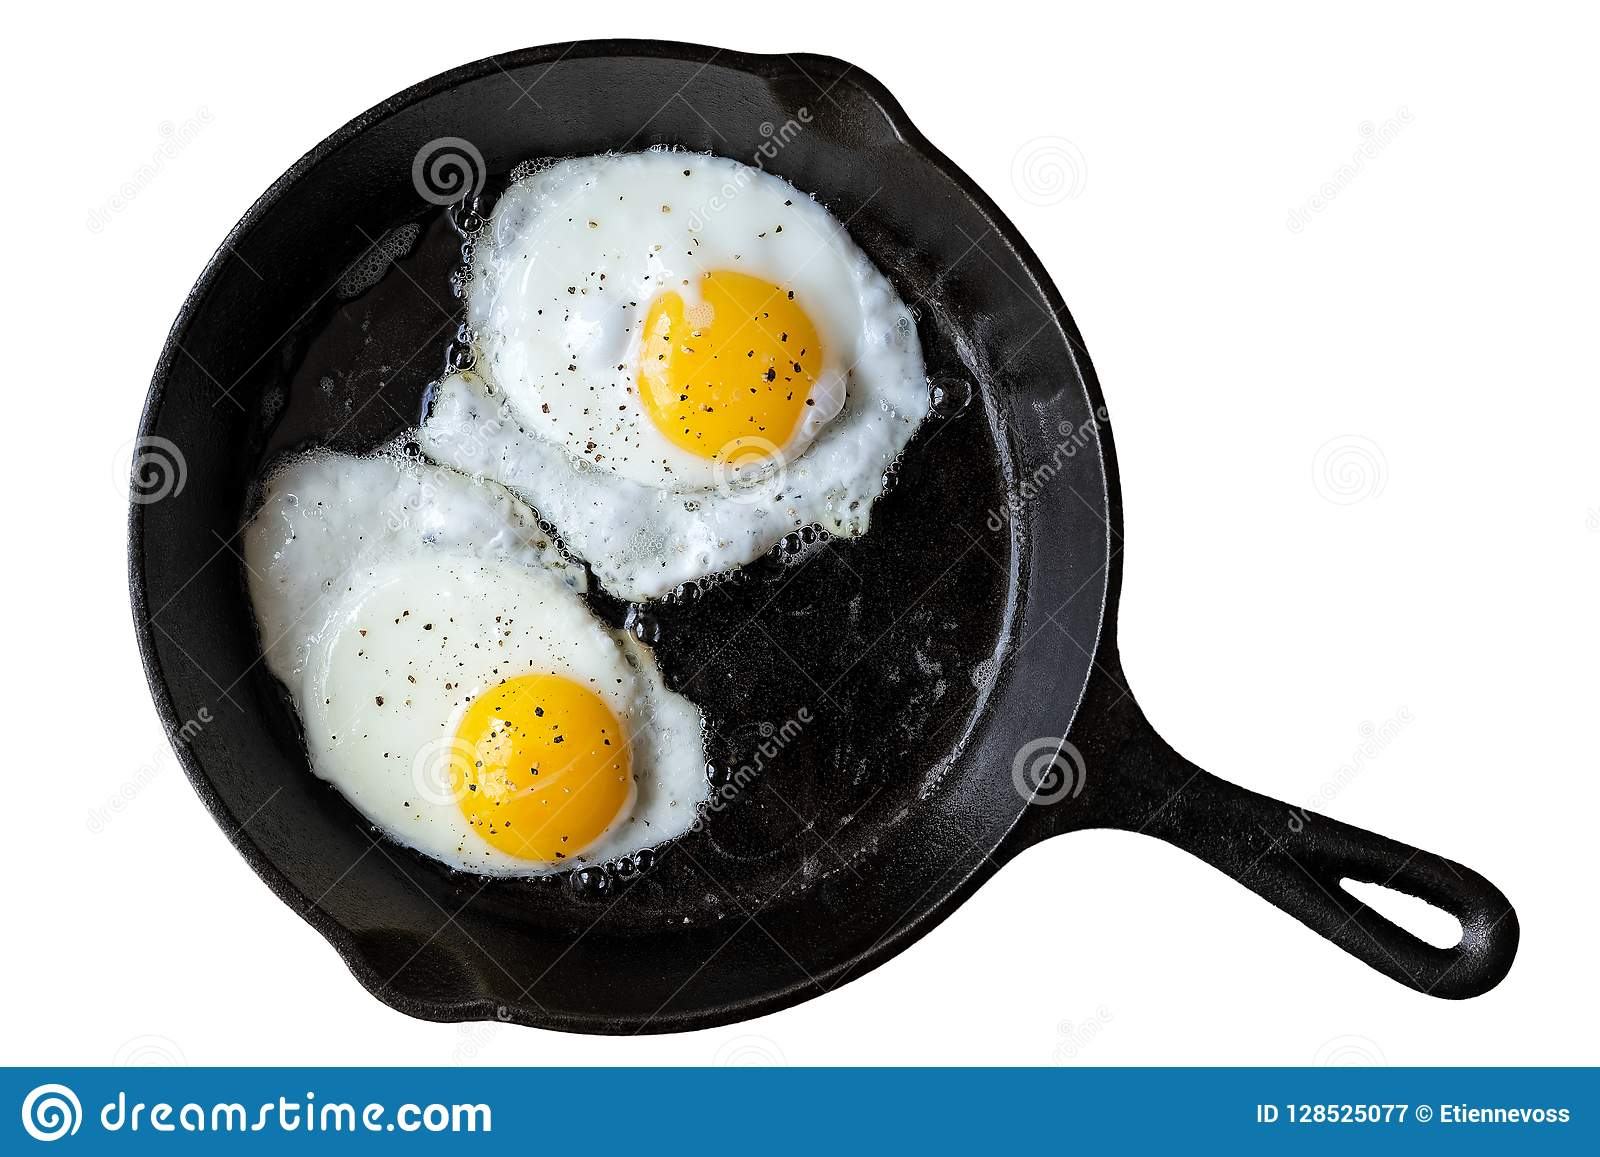 Two fried eggs in cast iron frying pan sprinkled with ground black pepper. Isolated on white from above.